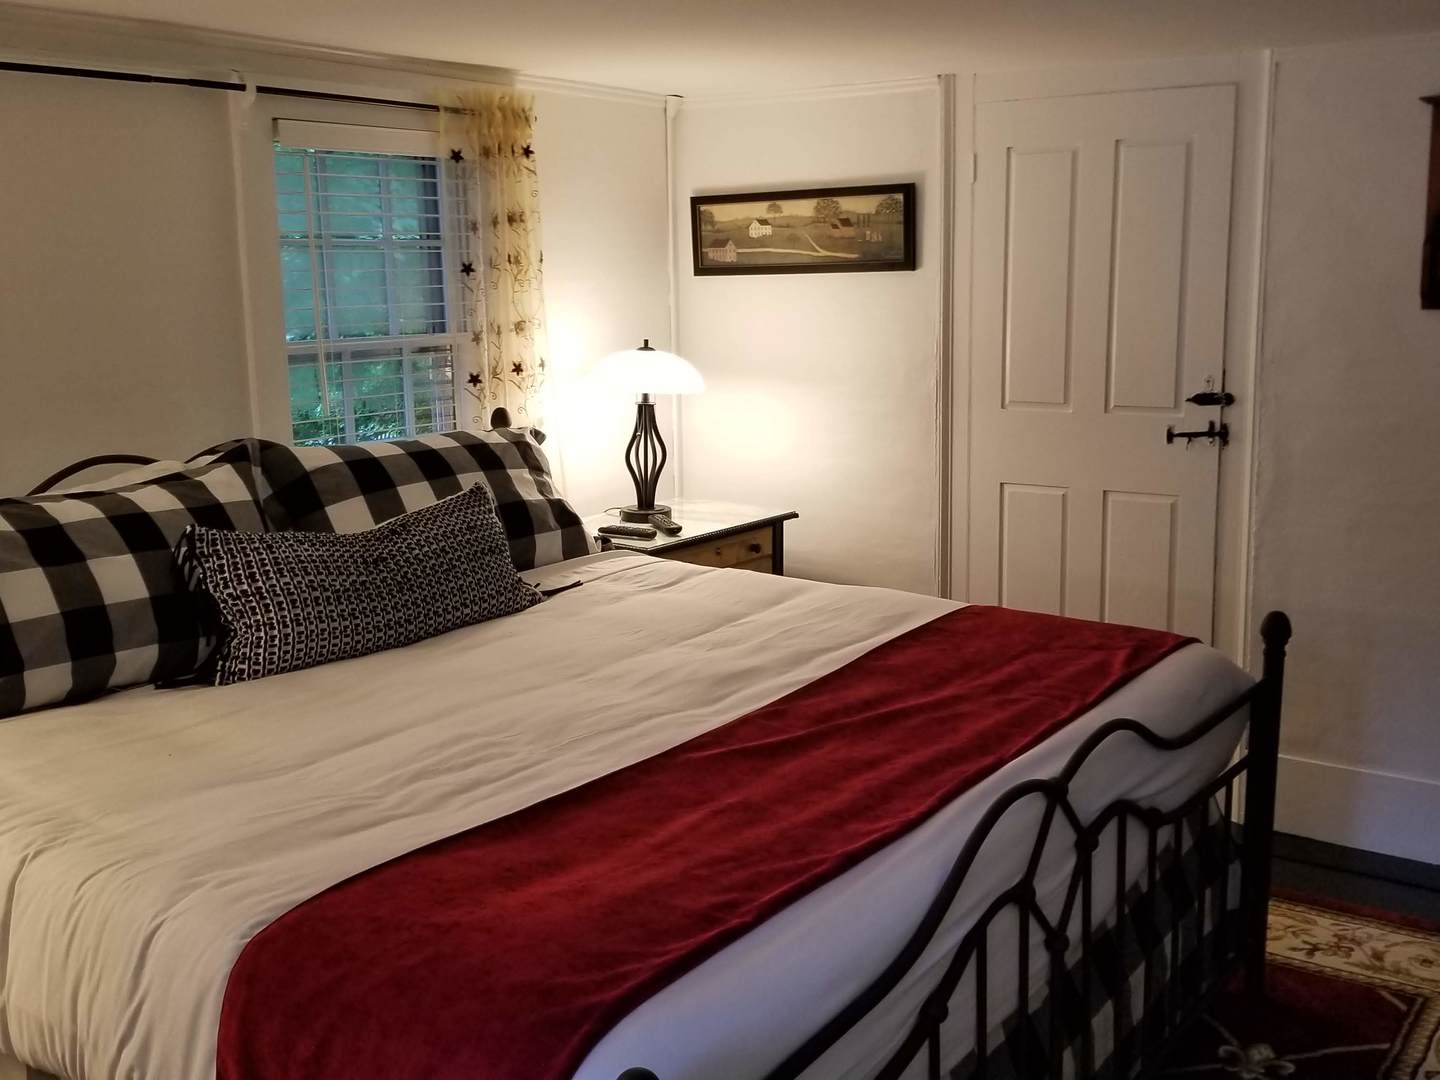 A bedroom with a large bed in a hotel room at Inn on Main.